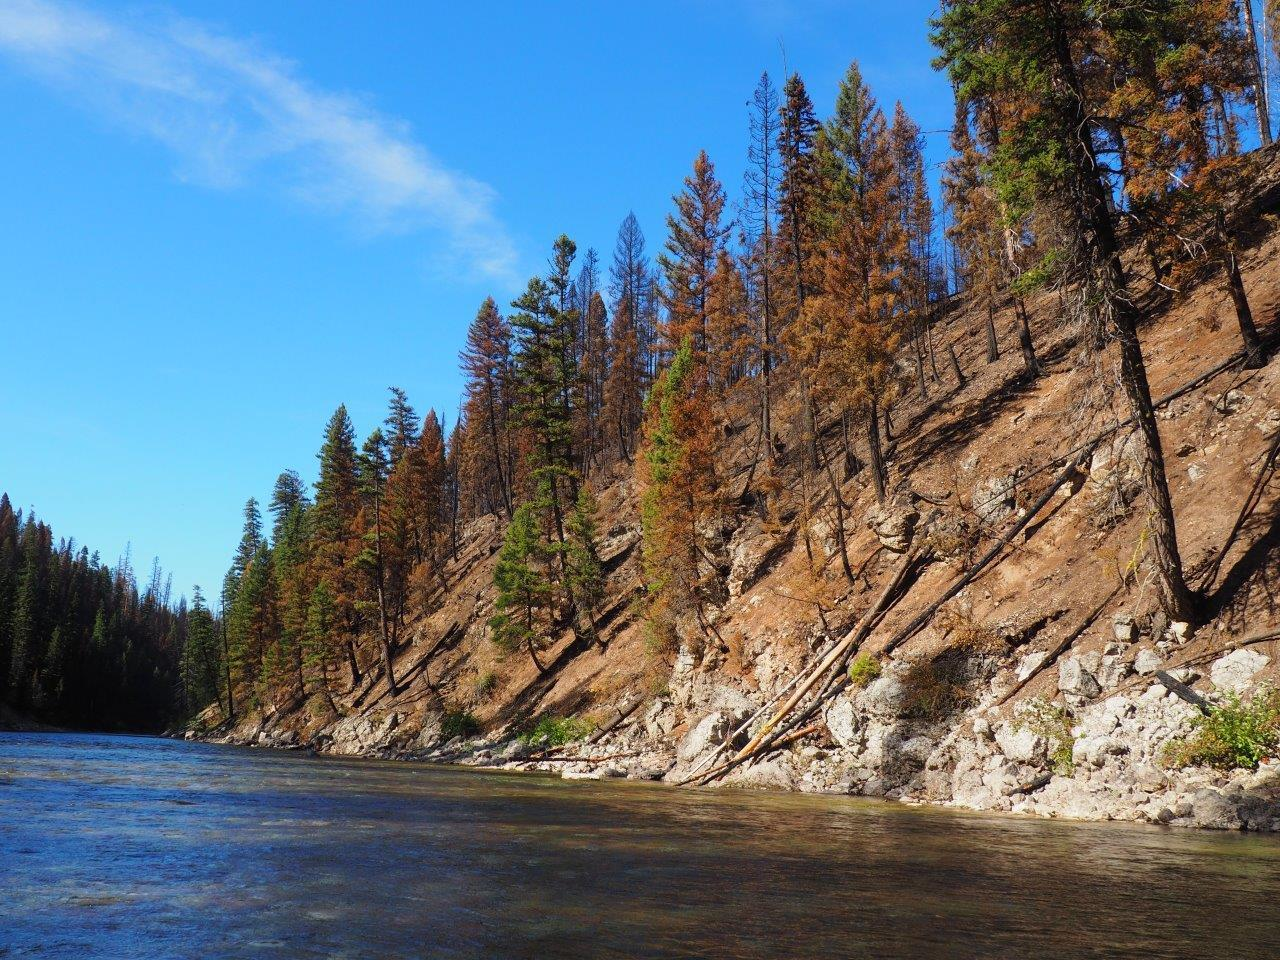 Effects of the Snow Creek Fire as seen looking north, downstream on the South Fork of the Flathead River. The burn area pictured is in the Helen Creek drainage. Photo by Fischer Gangemi.